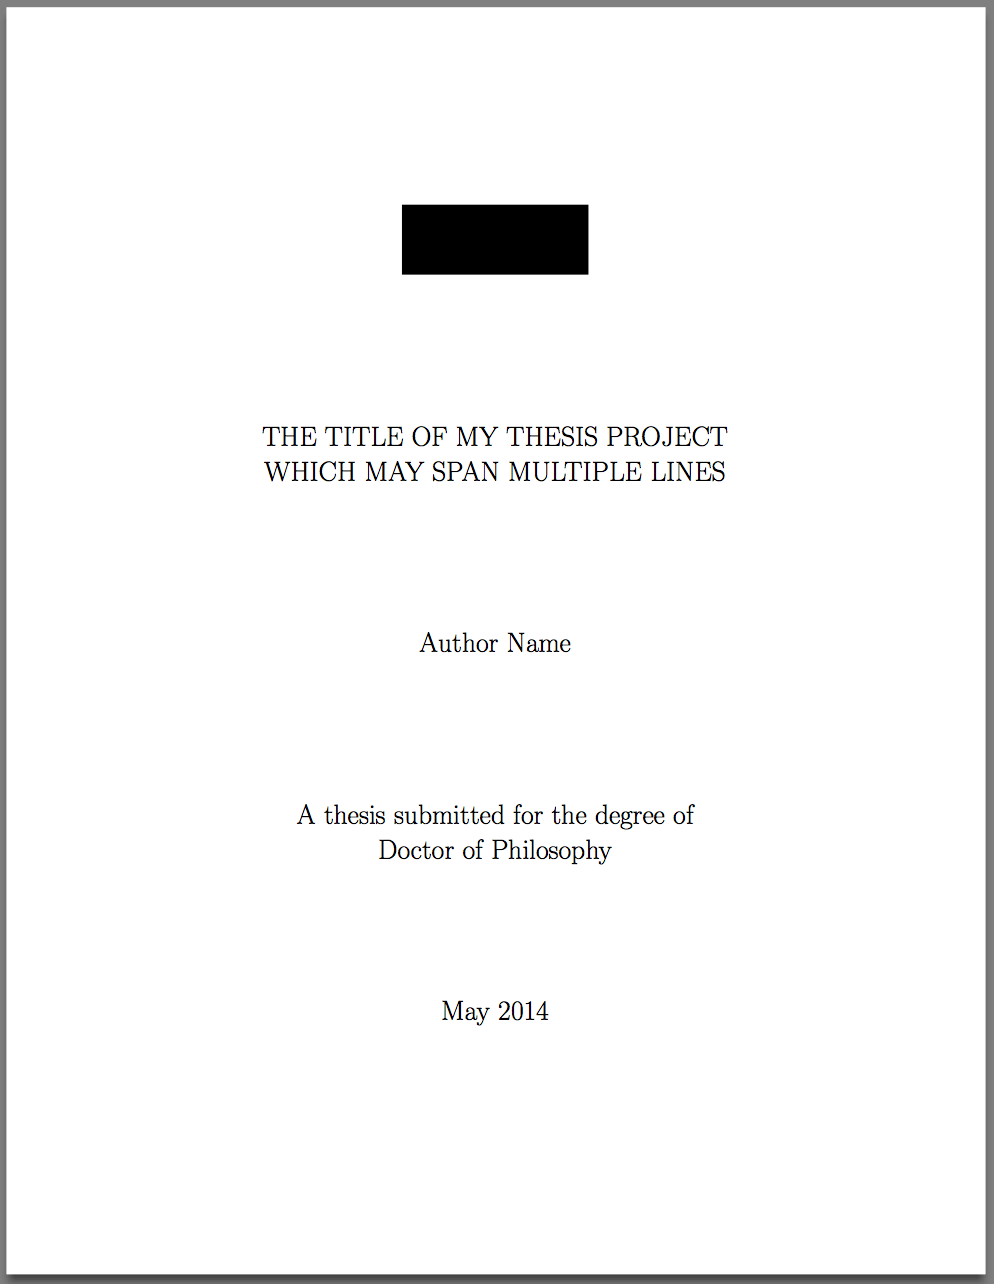 Example of a thesis title page